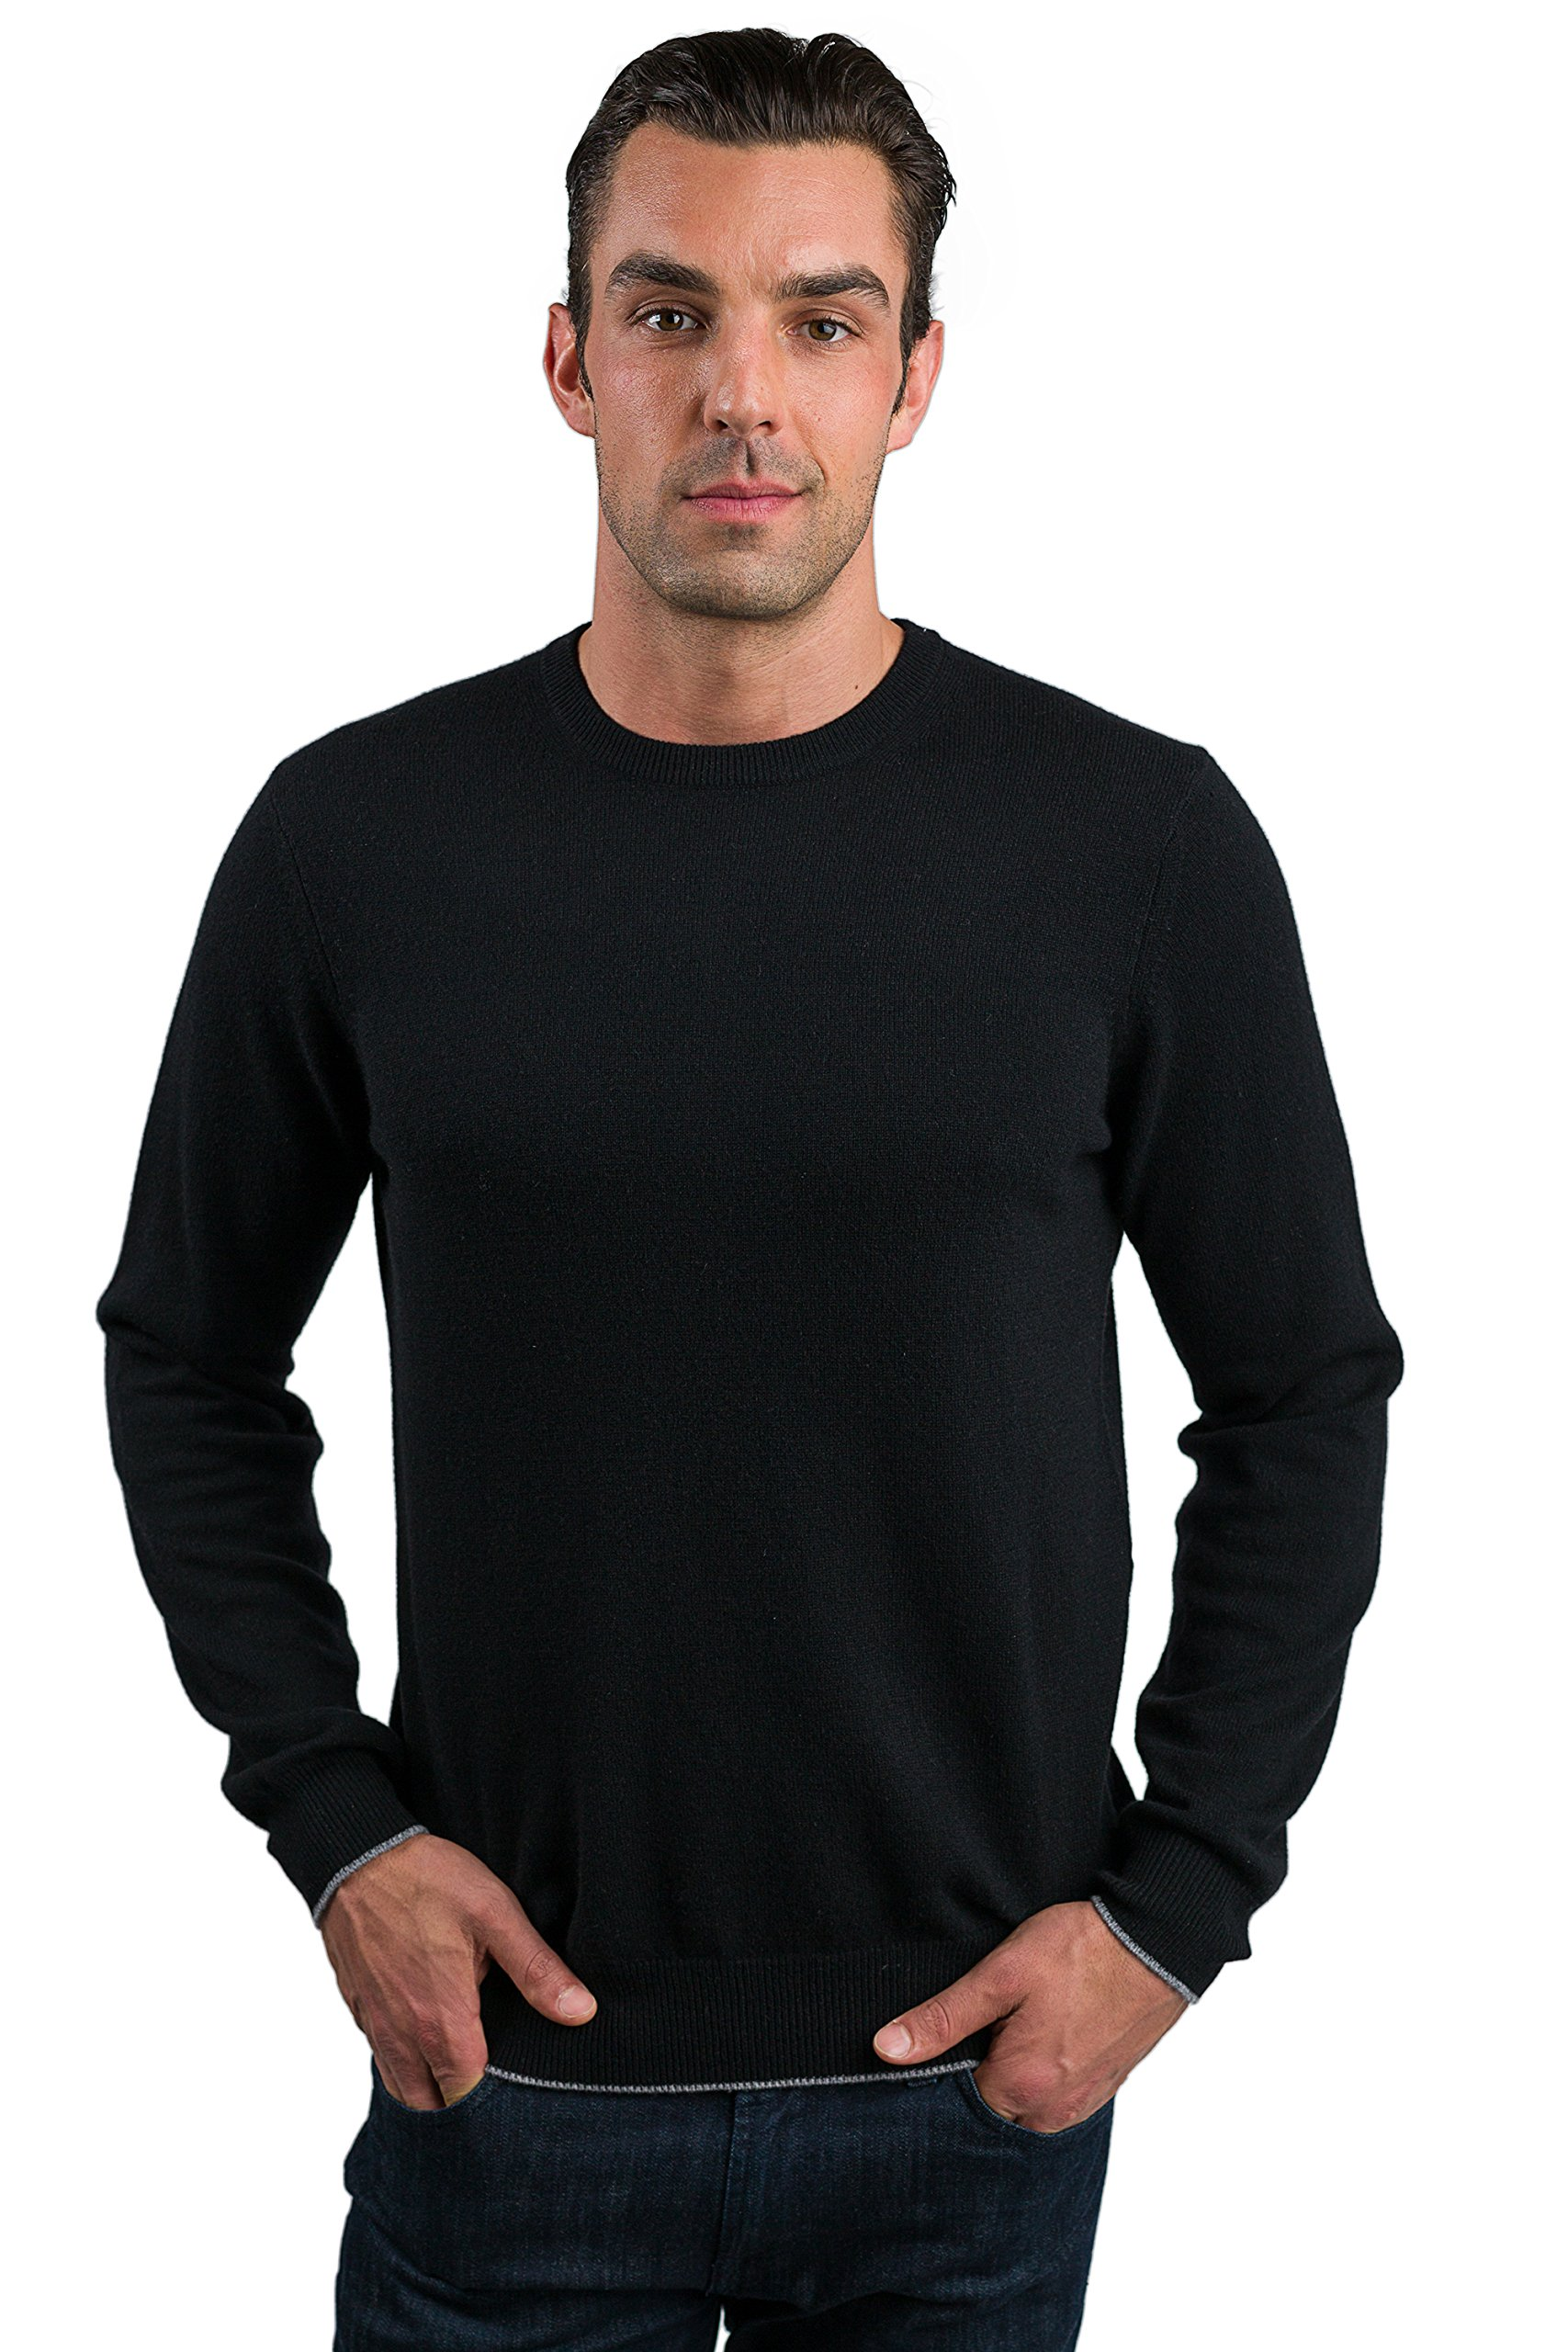 JENNIE LIU Men's 100% Pure Cashmere Long Sleeve Pullover Crewneck Sweater (XX-Large, Black) by JENNIE LIU